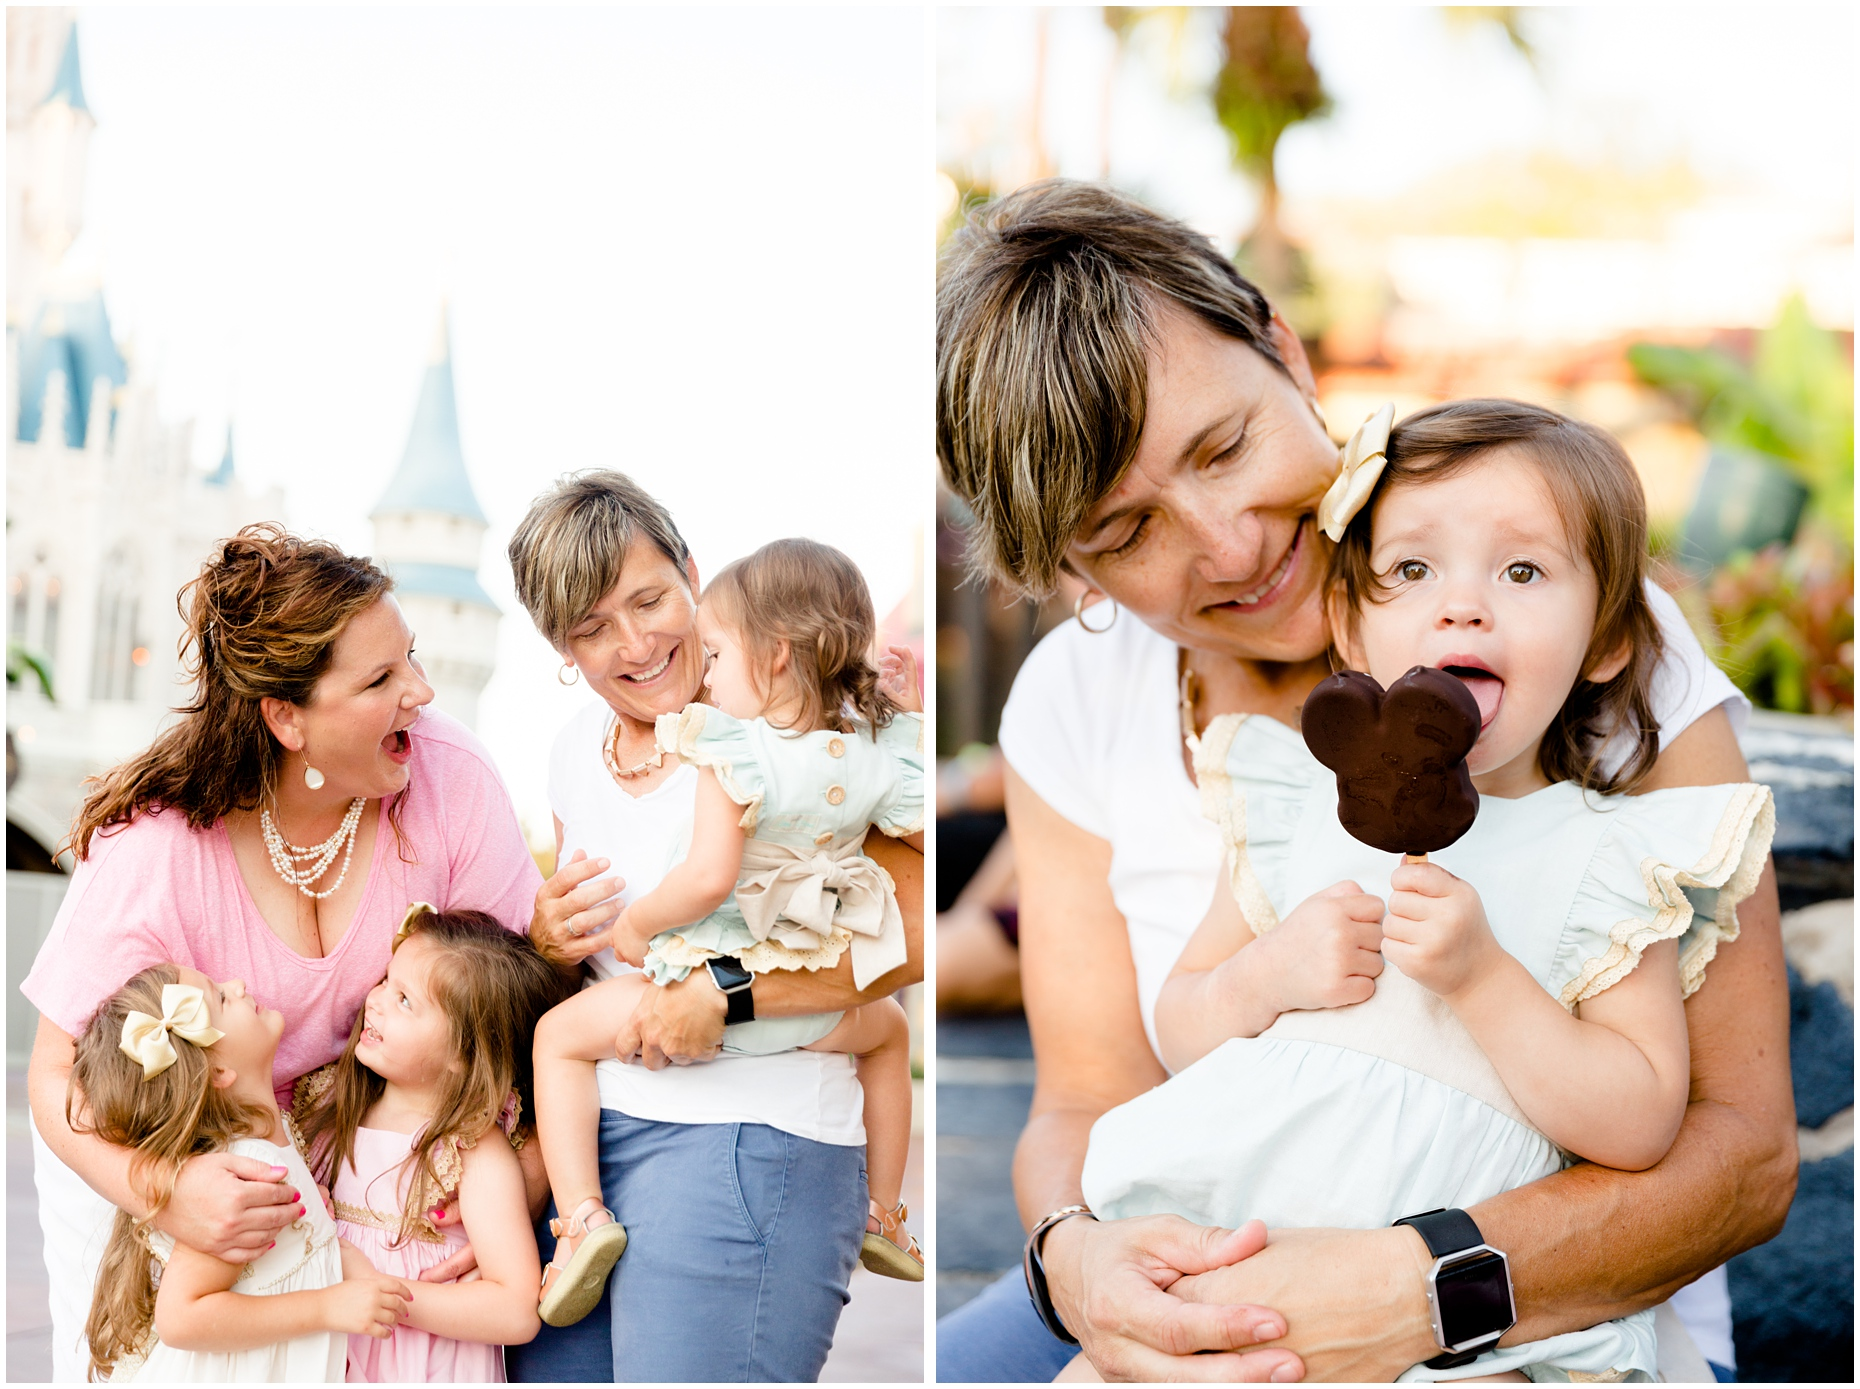 Sandy_Magic_Kingdom_Disney_World_Family_Photographer